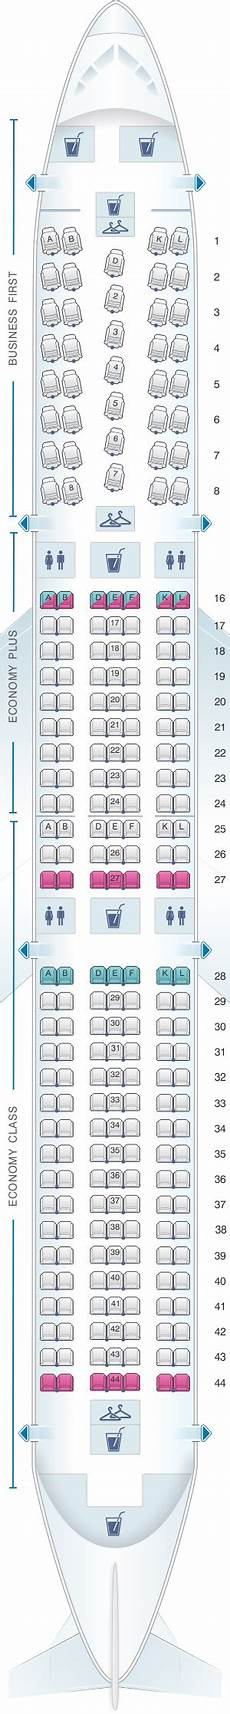 767 Jet Seating Chart Seat Map United Airlines Boeing B767 400er 764